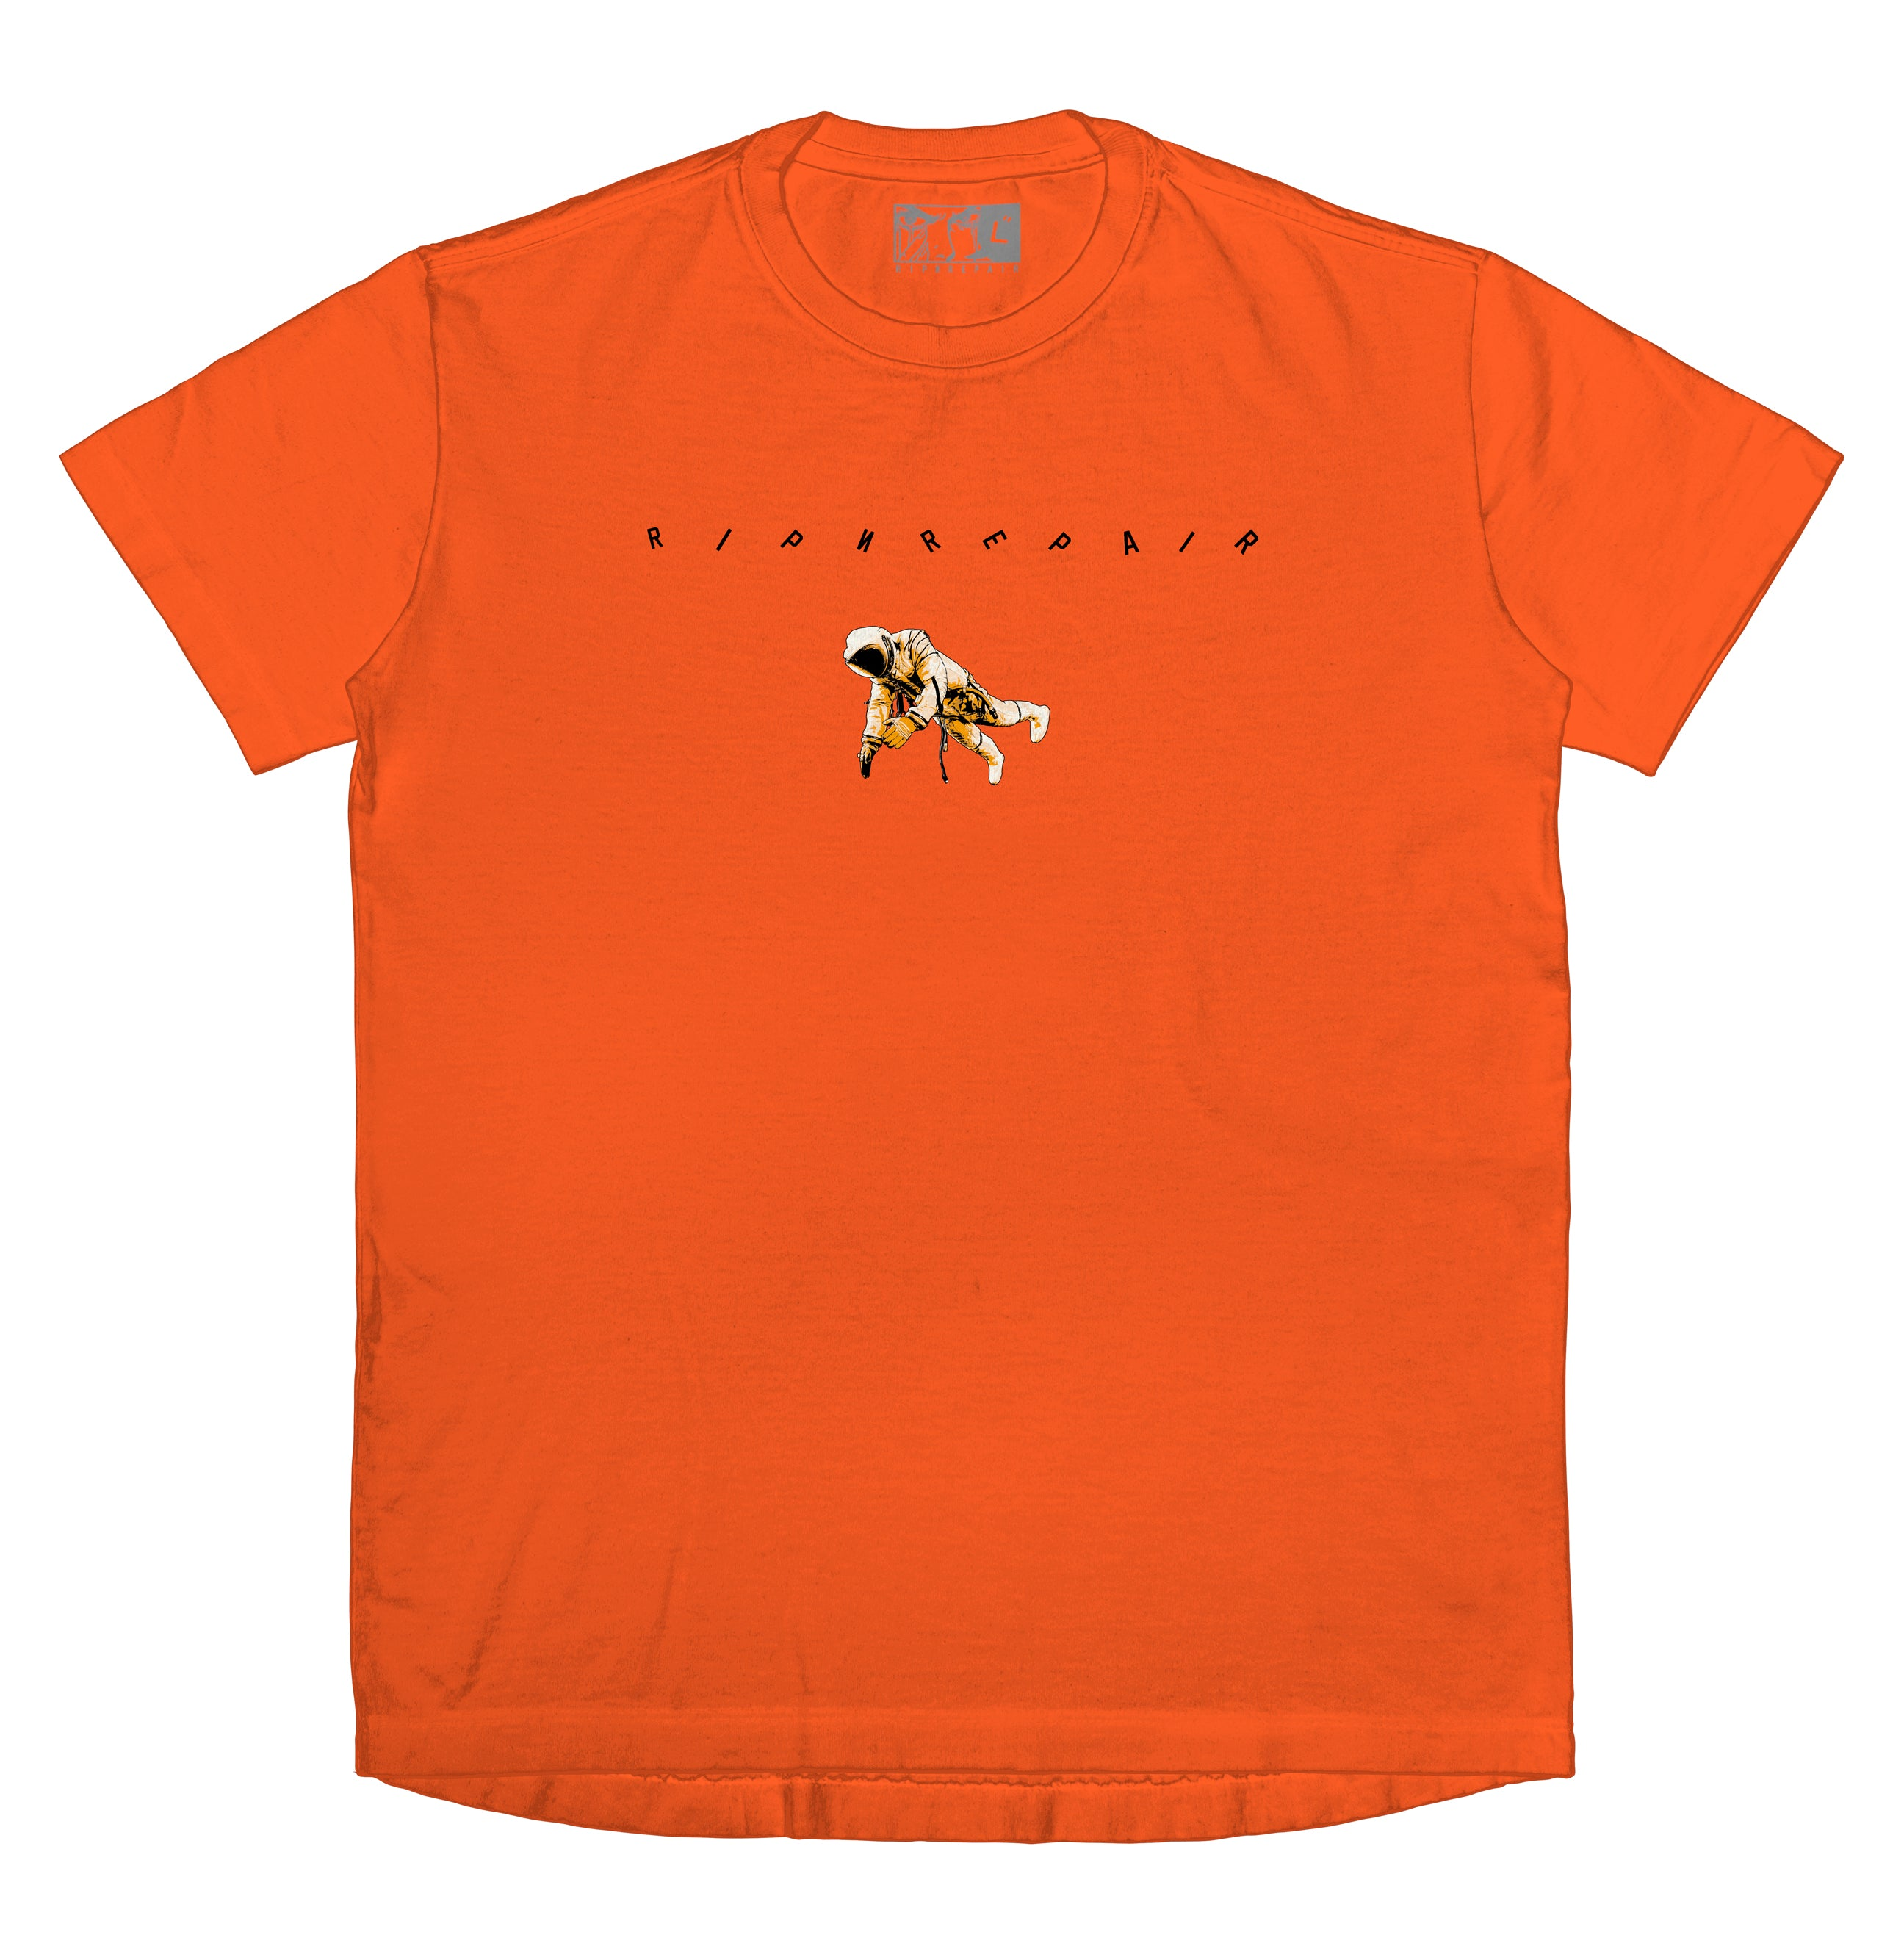 My Space - T-Shirt (Orange)